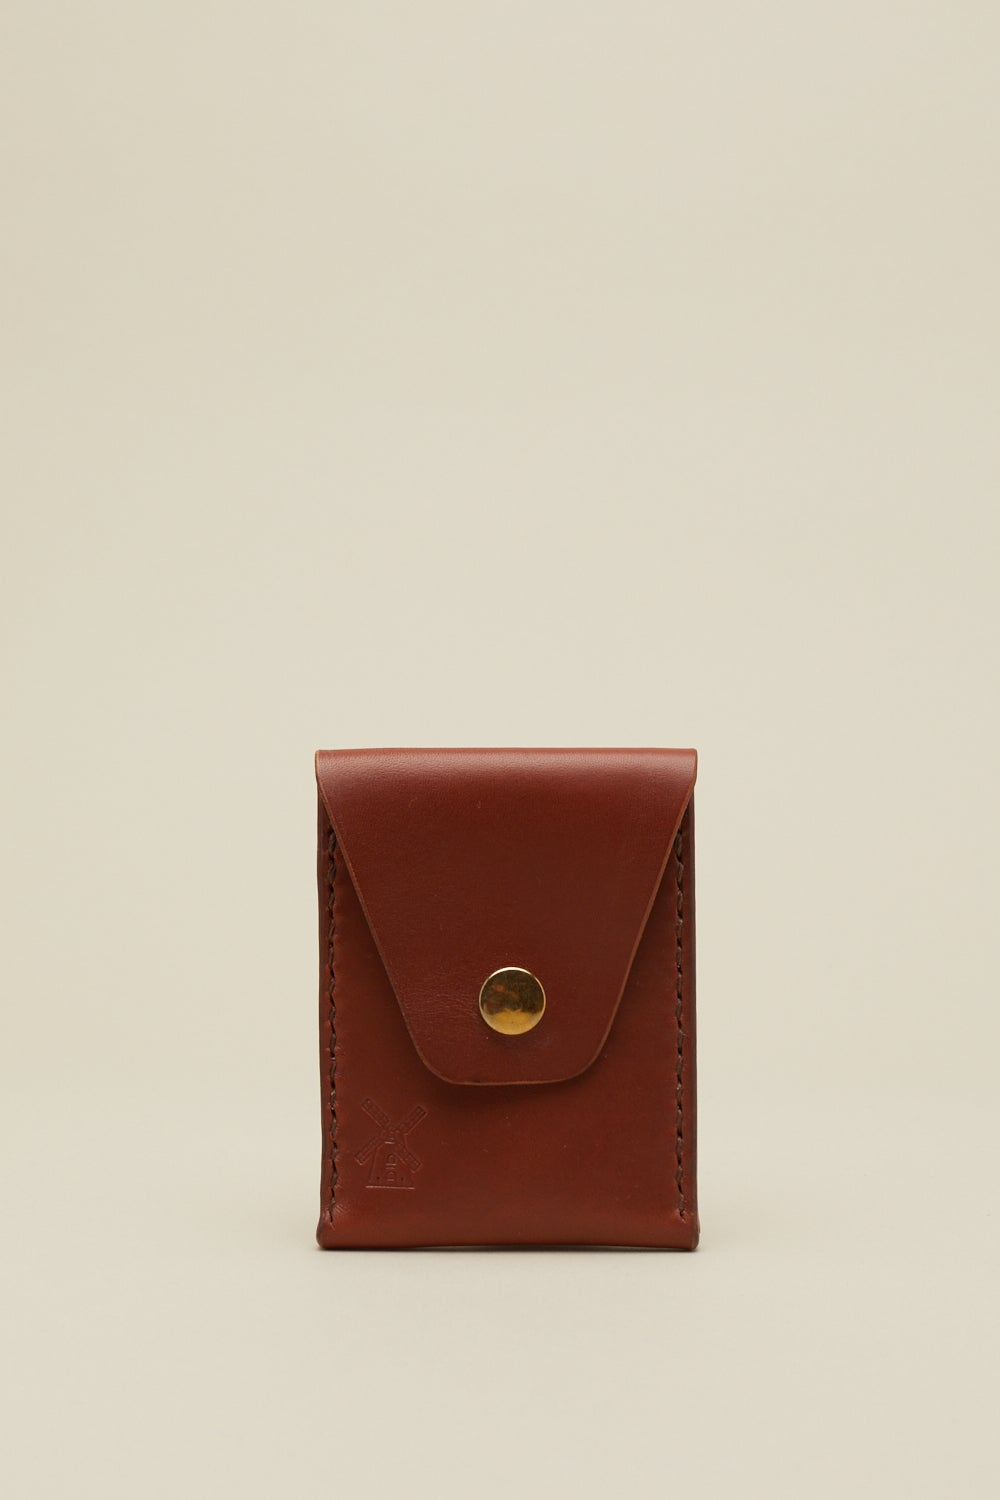 Image of Card Pouch in Mahogany